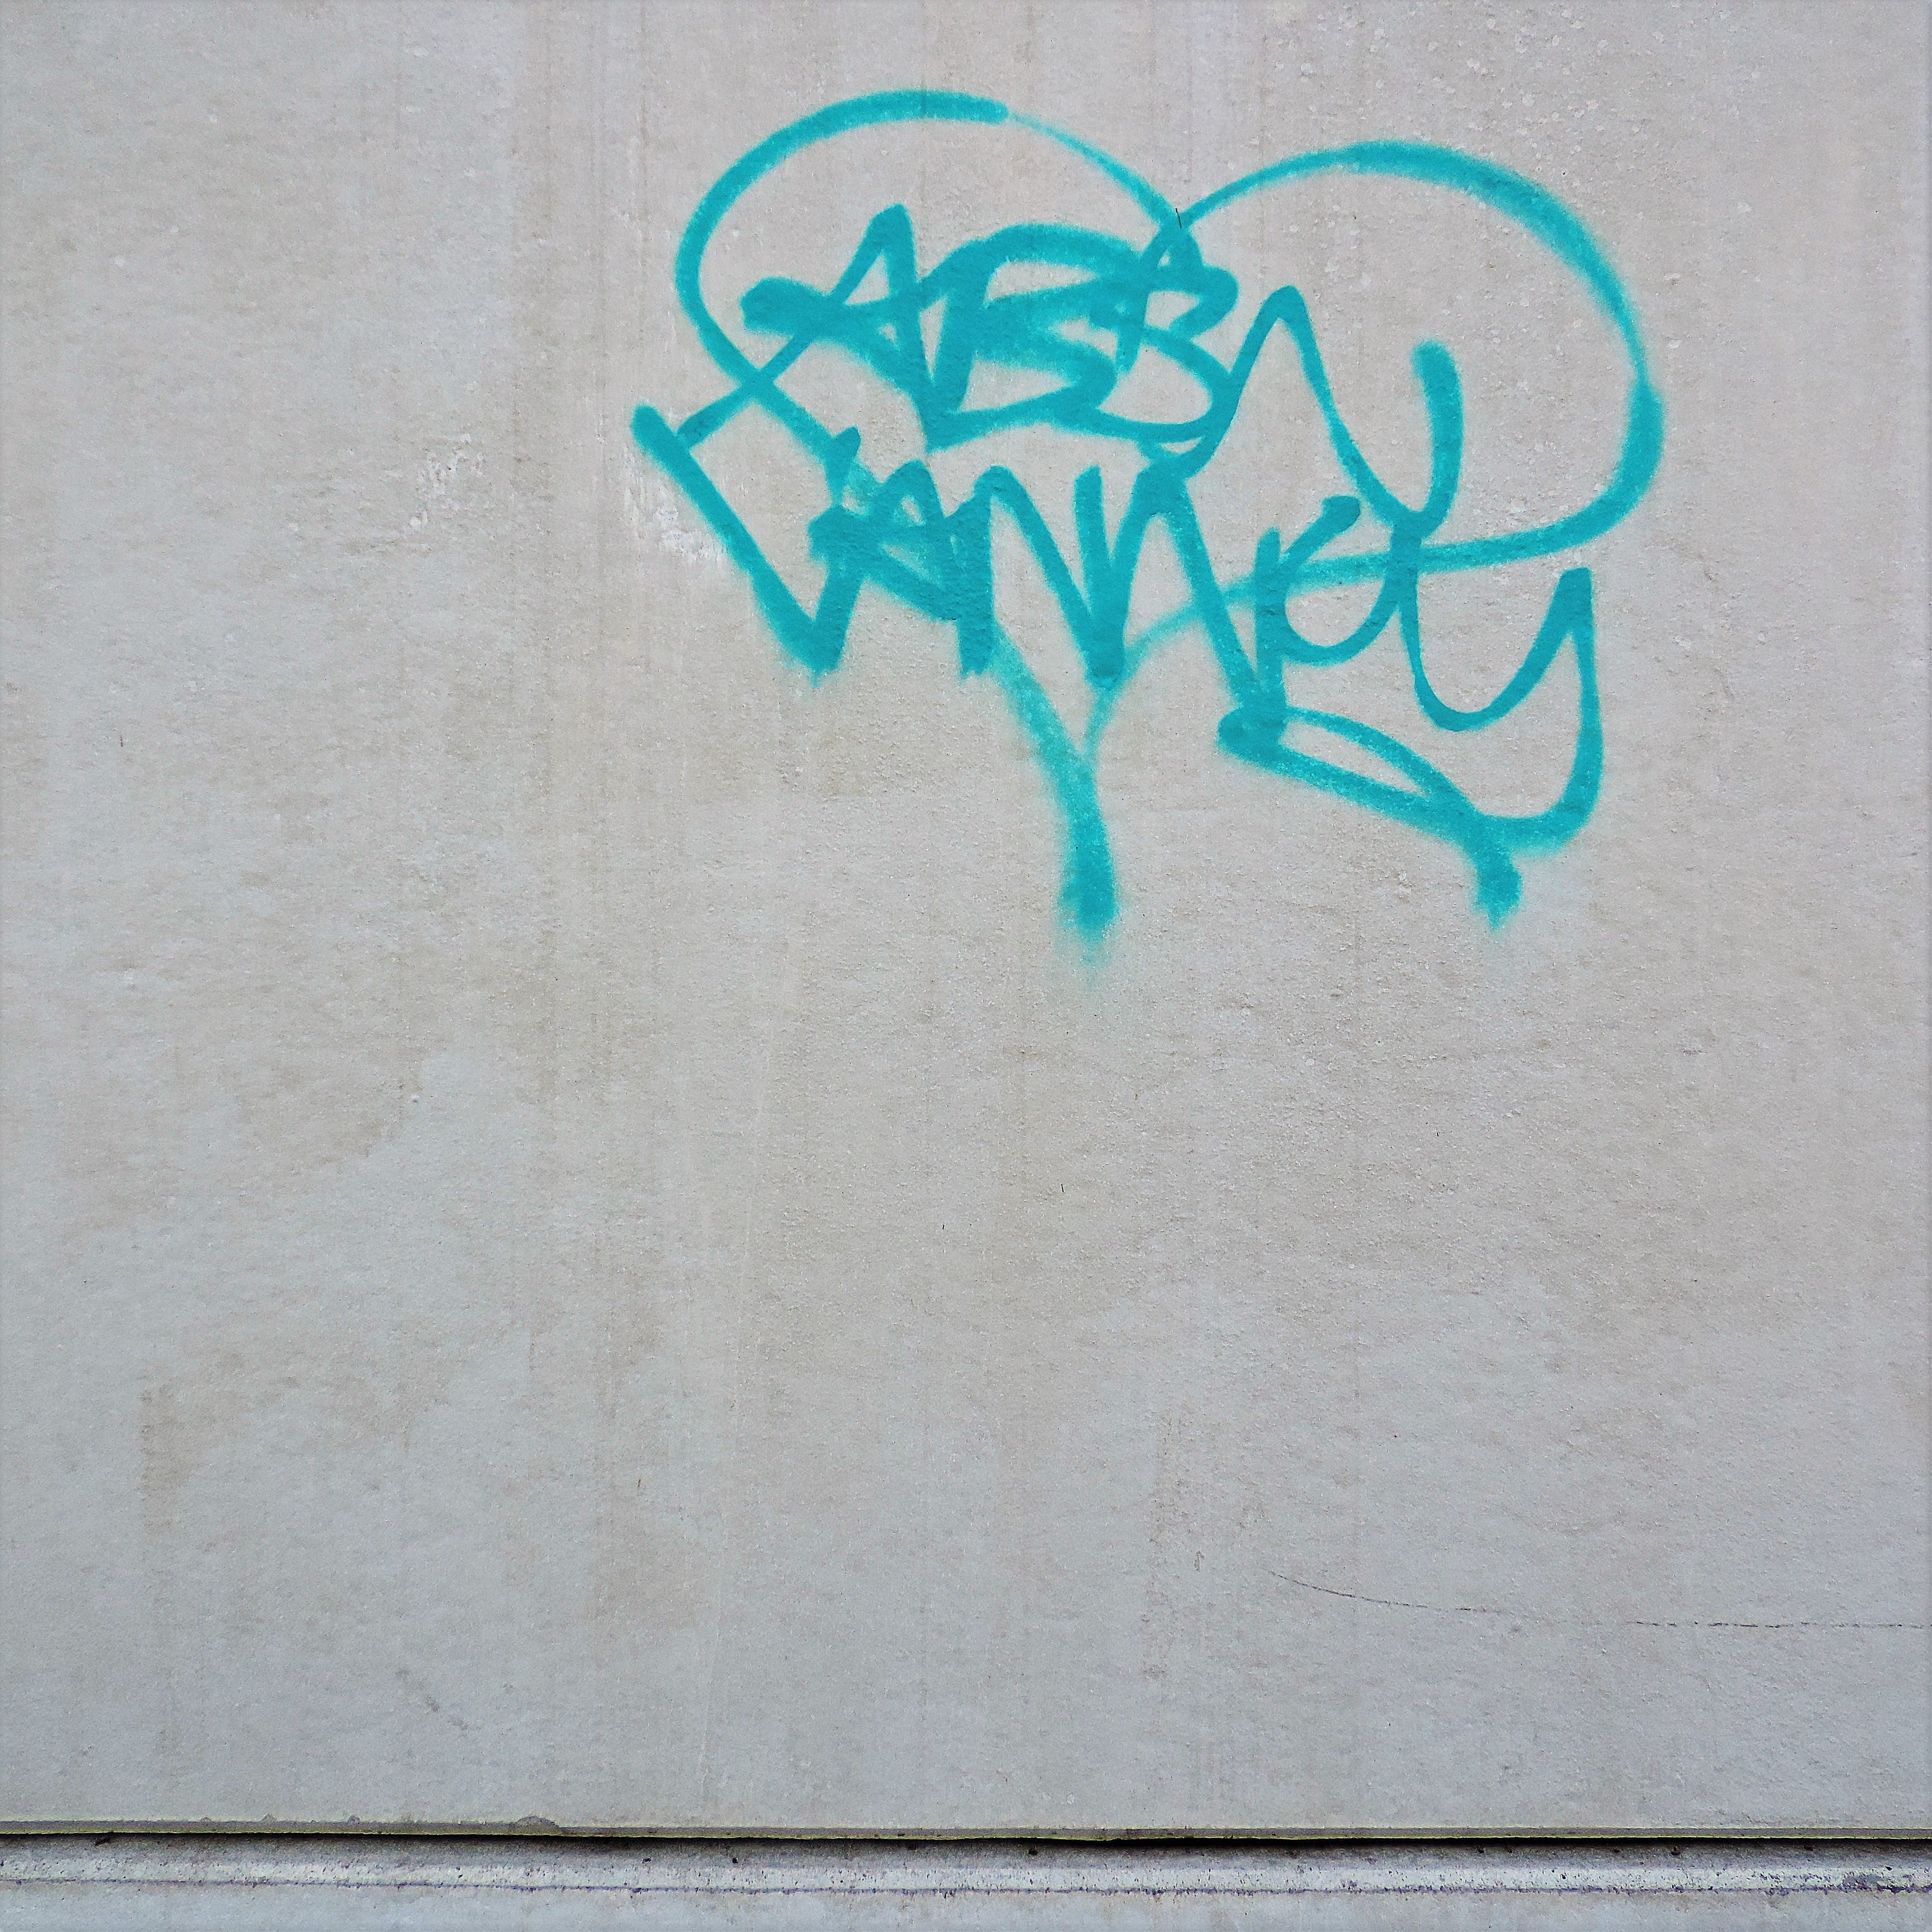 03882 | berliner mauern | berlin, graffiti, spray